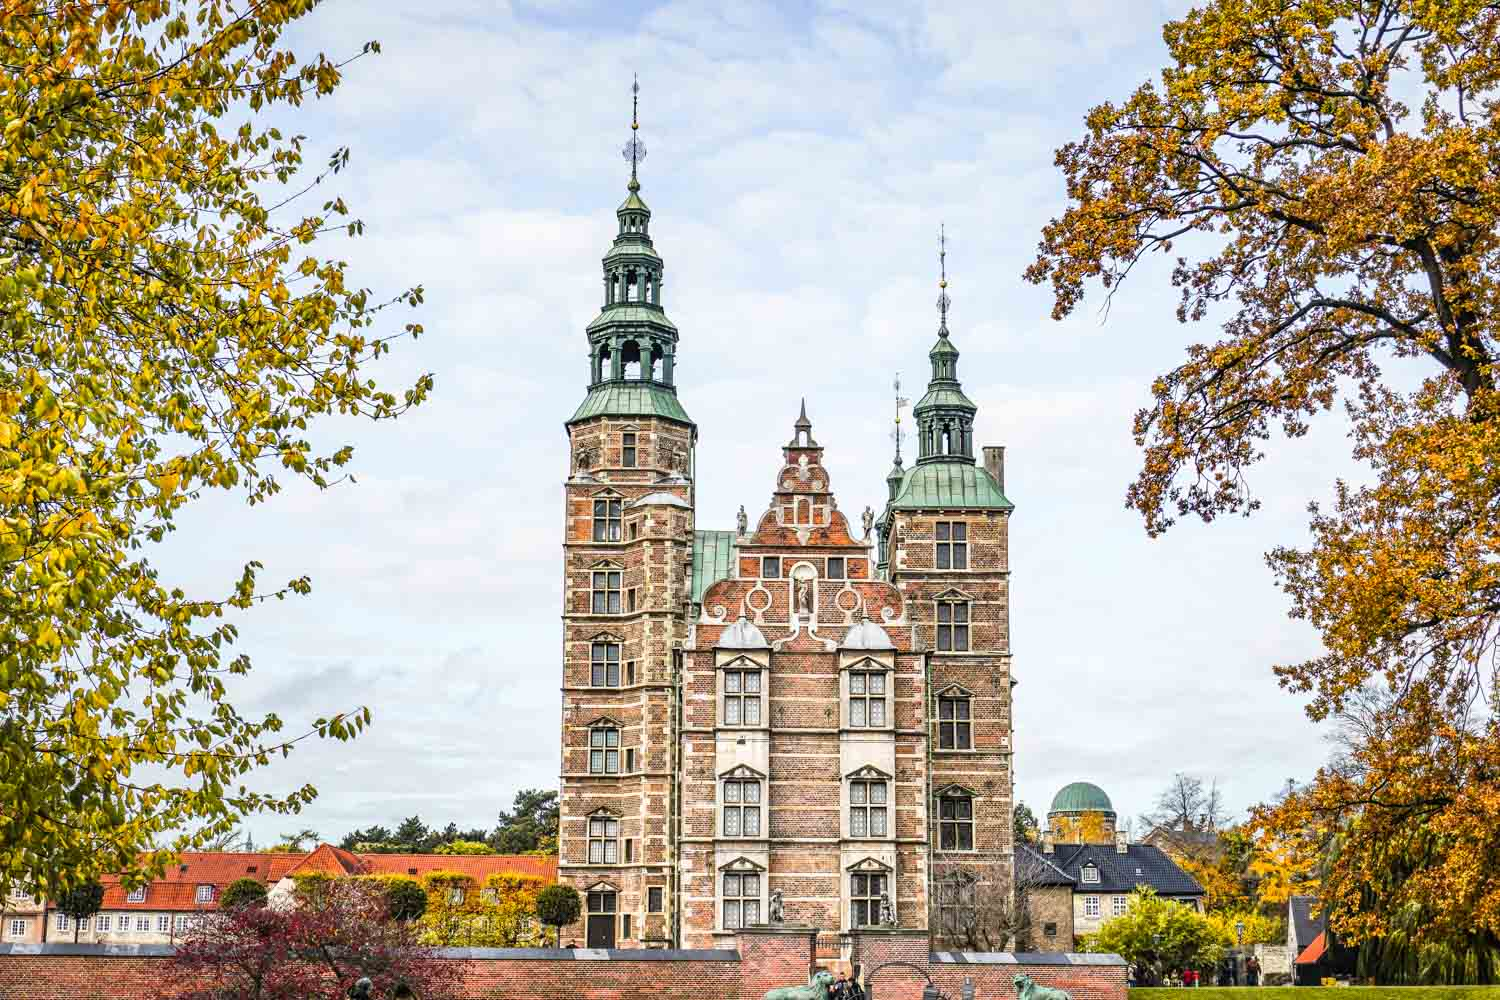 Rosenborg Slot - one of the places that is free to enter with the Copenhagen Card